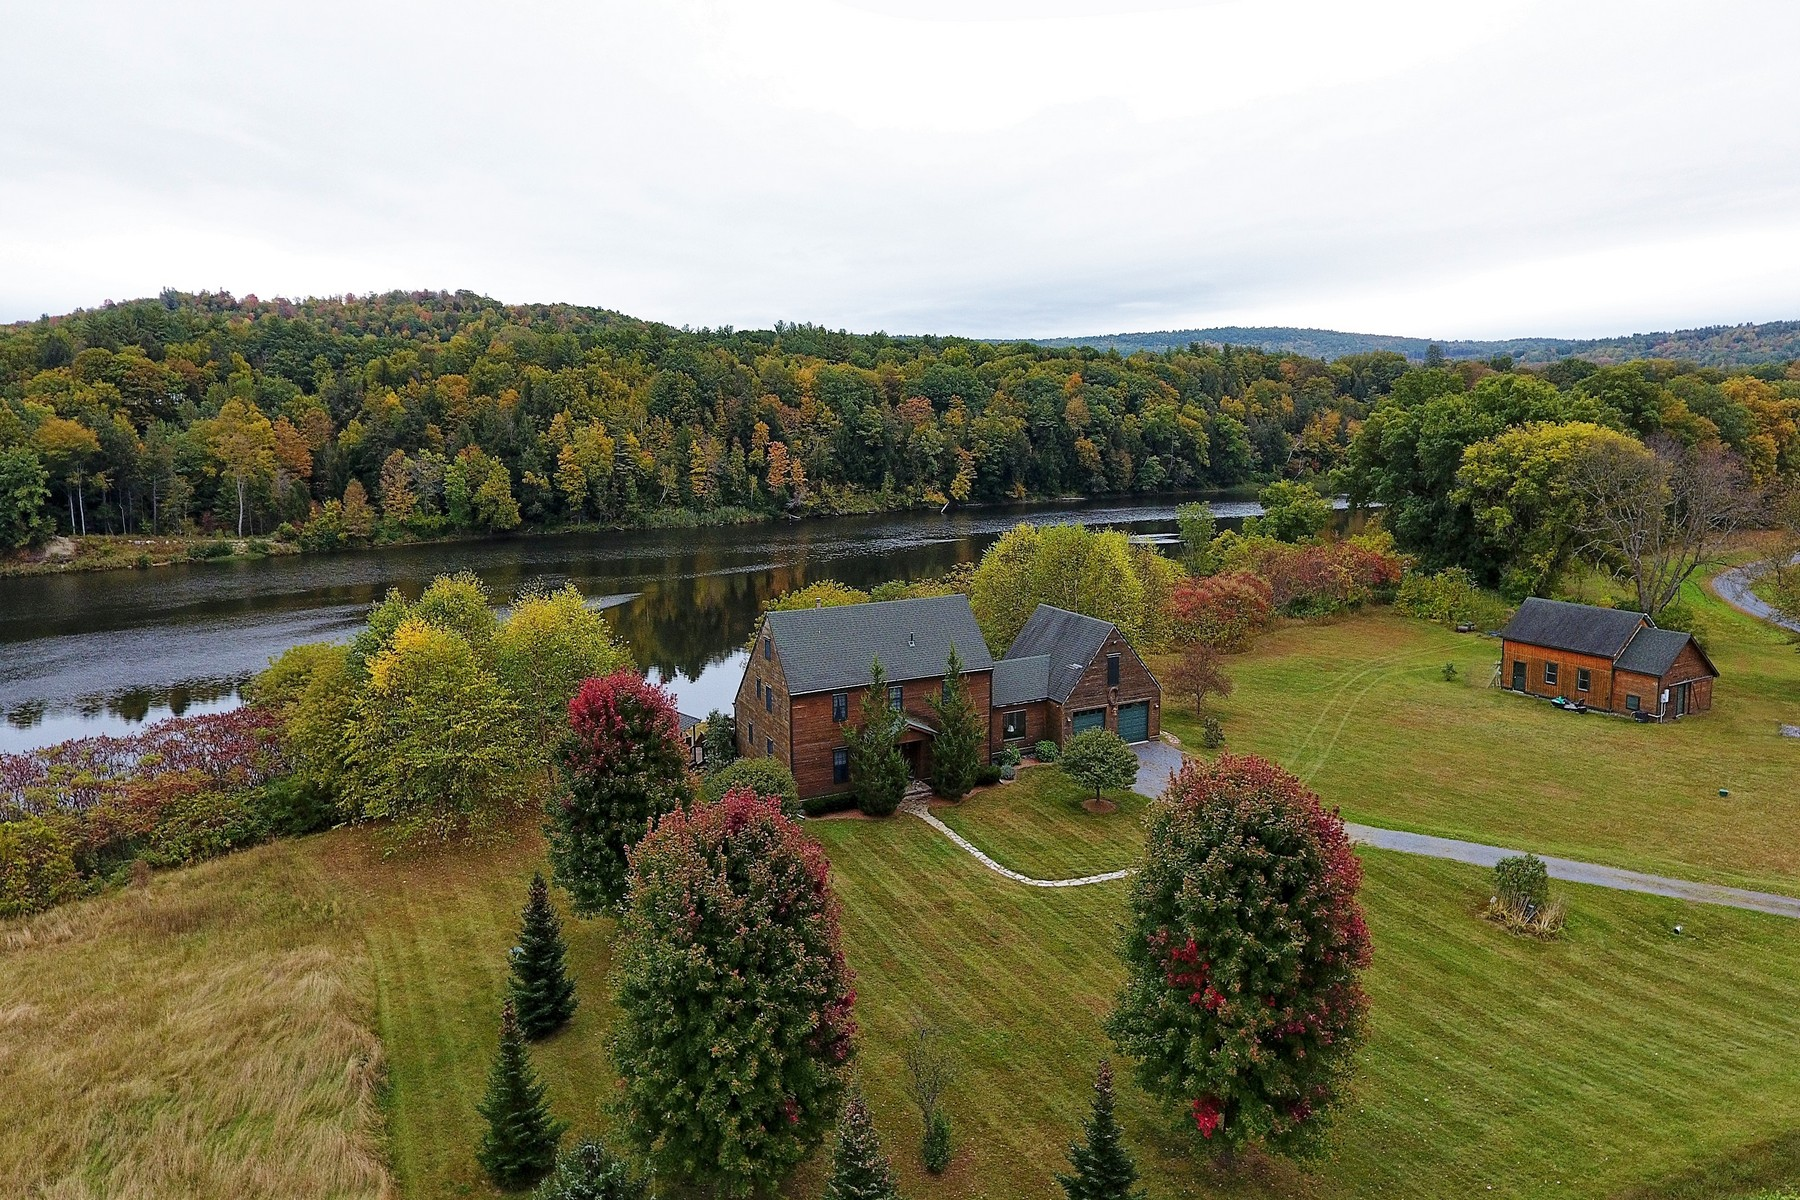 Single Family Homes for Sale at Tranquil Connecticut River Estate 1811 Connecticut River Rd Springfield, Vermont 05156 United States